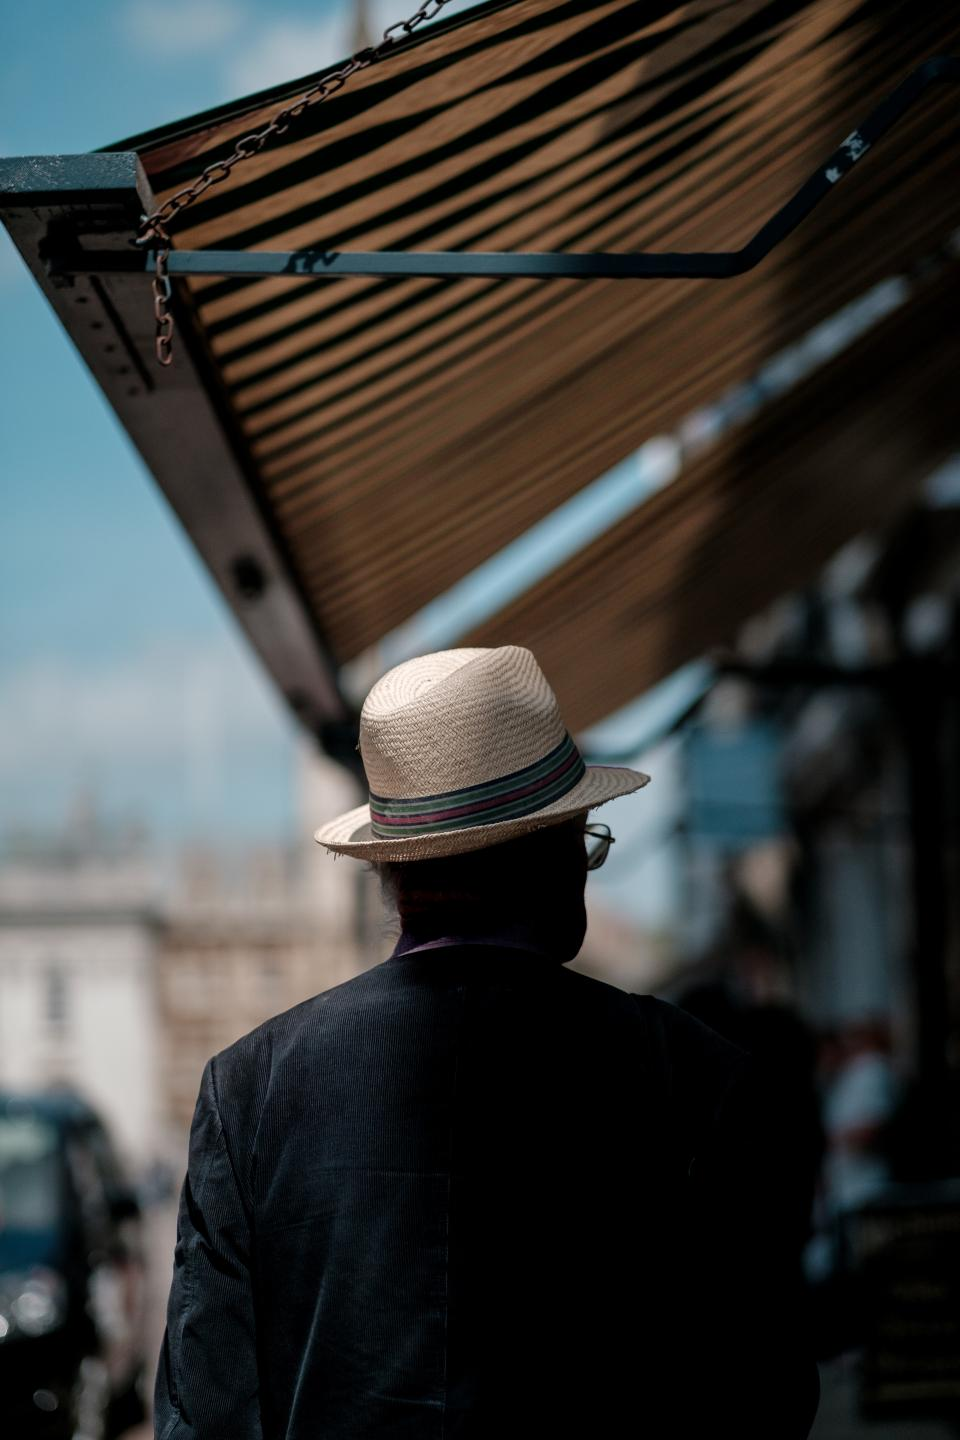 blur people old man male walking alone back coat hat roof